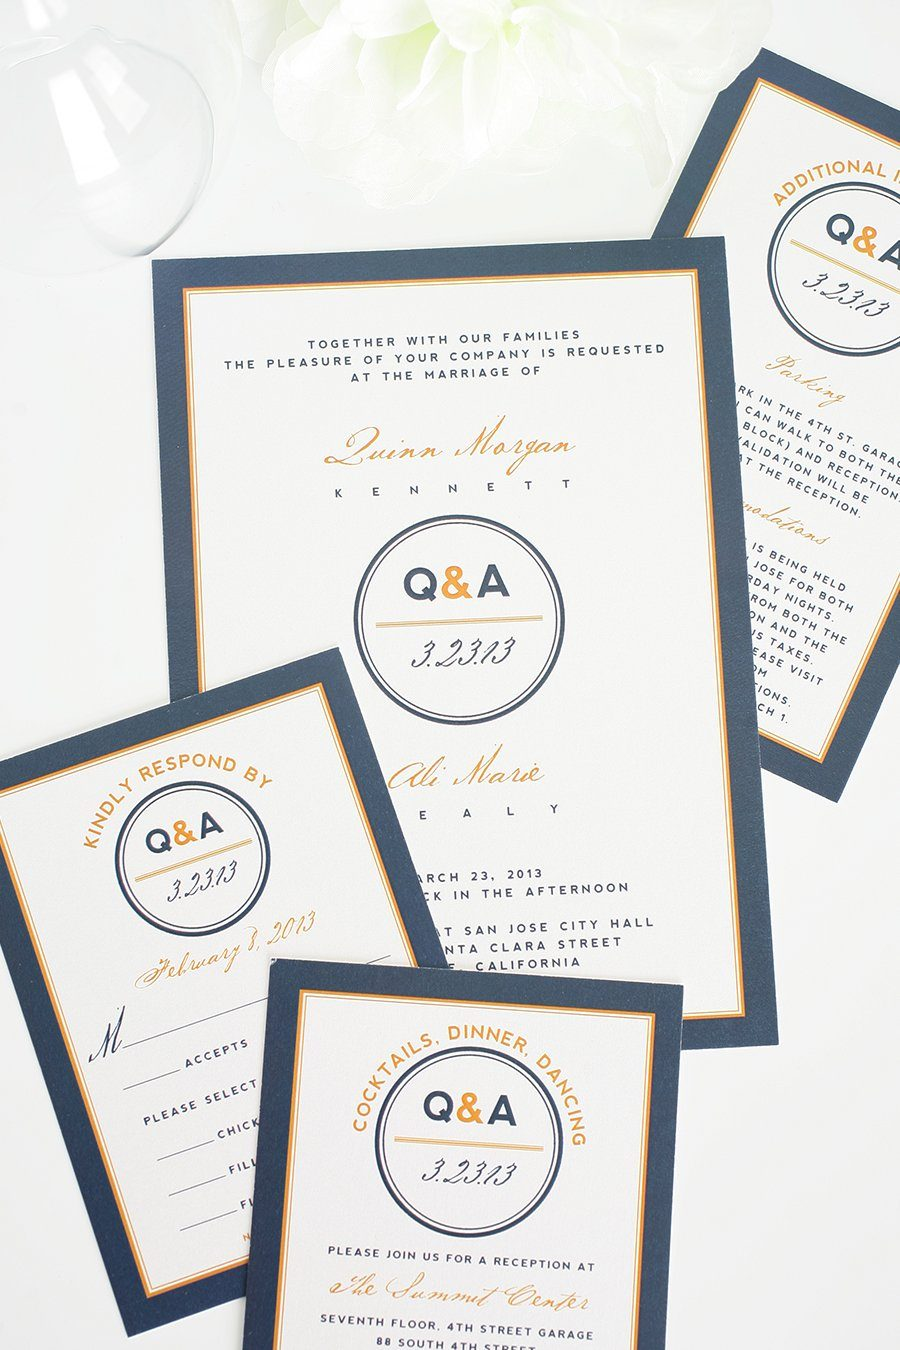 Free Sample Invitation with luxury invitations layout